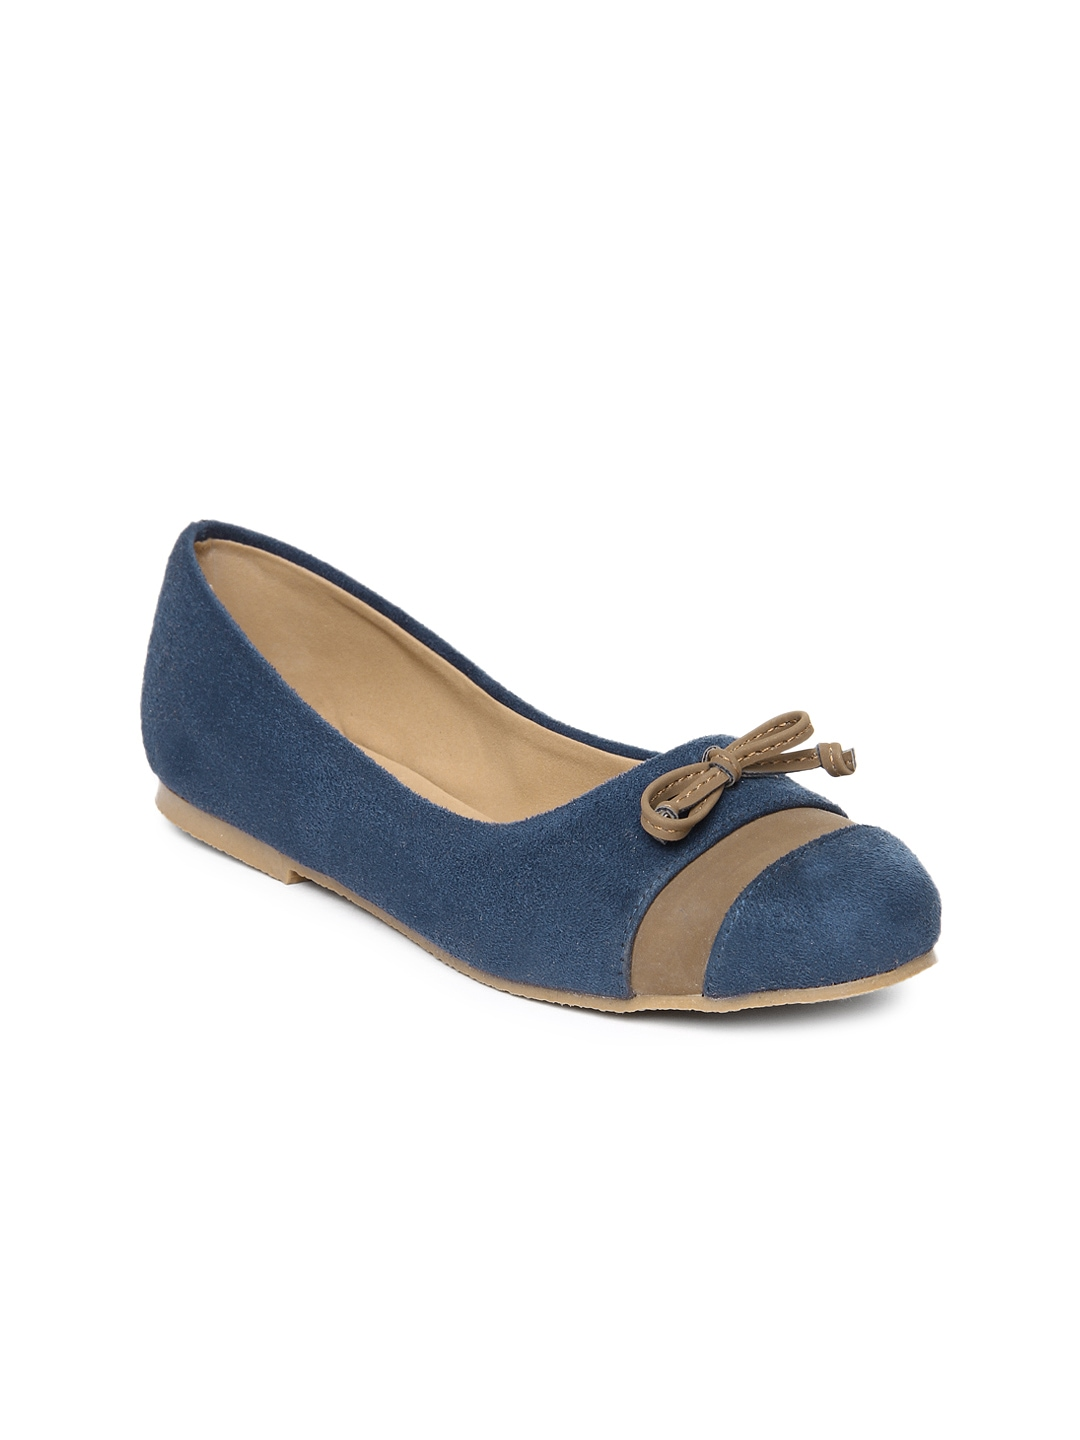 Blue Womens Flats Sale: Save Up to 70% Off! Shop coolzloadwok.ga's huge selection of Blue Flats for Women - Over styles available. FREE Shipping & Exchanges, and a % price guarantee!